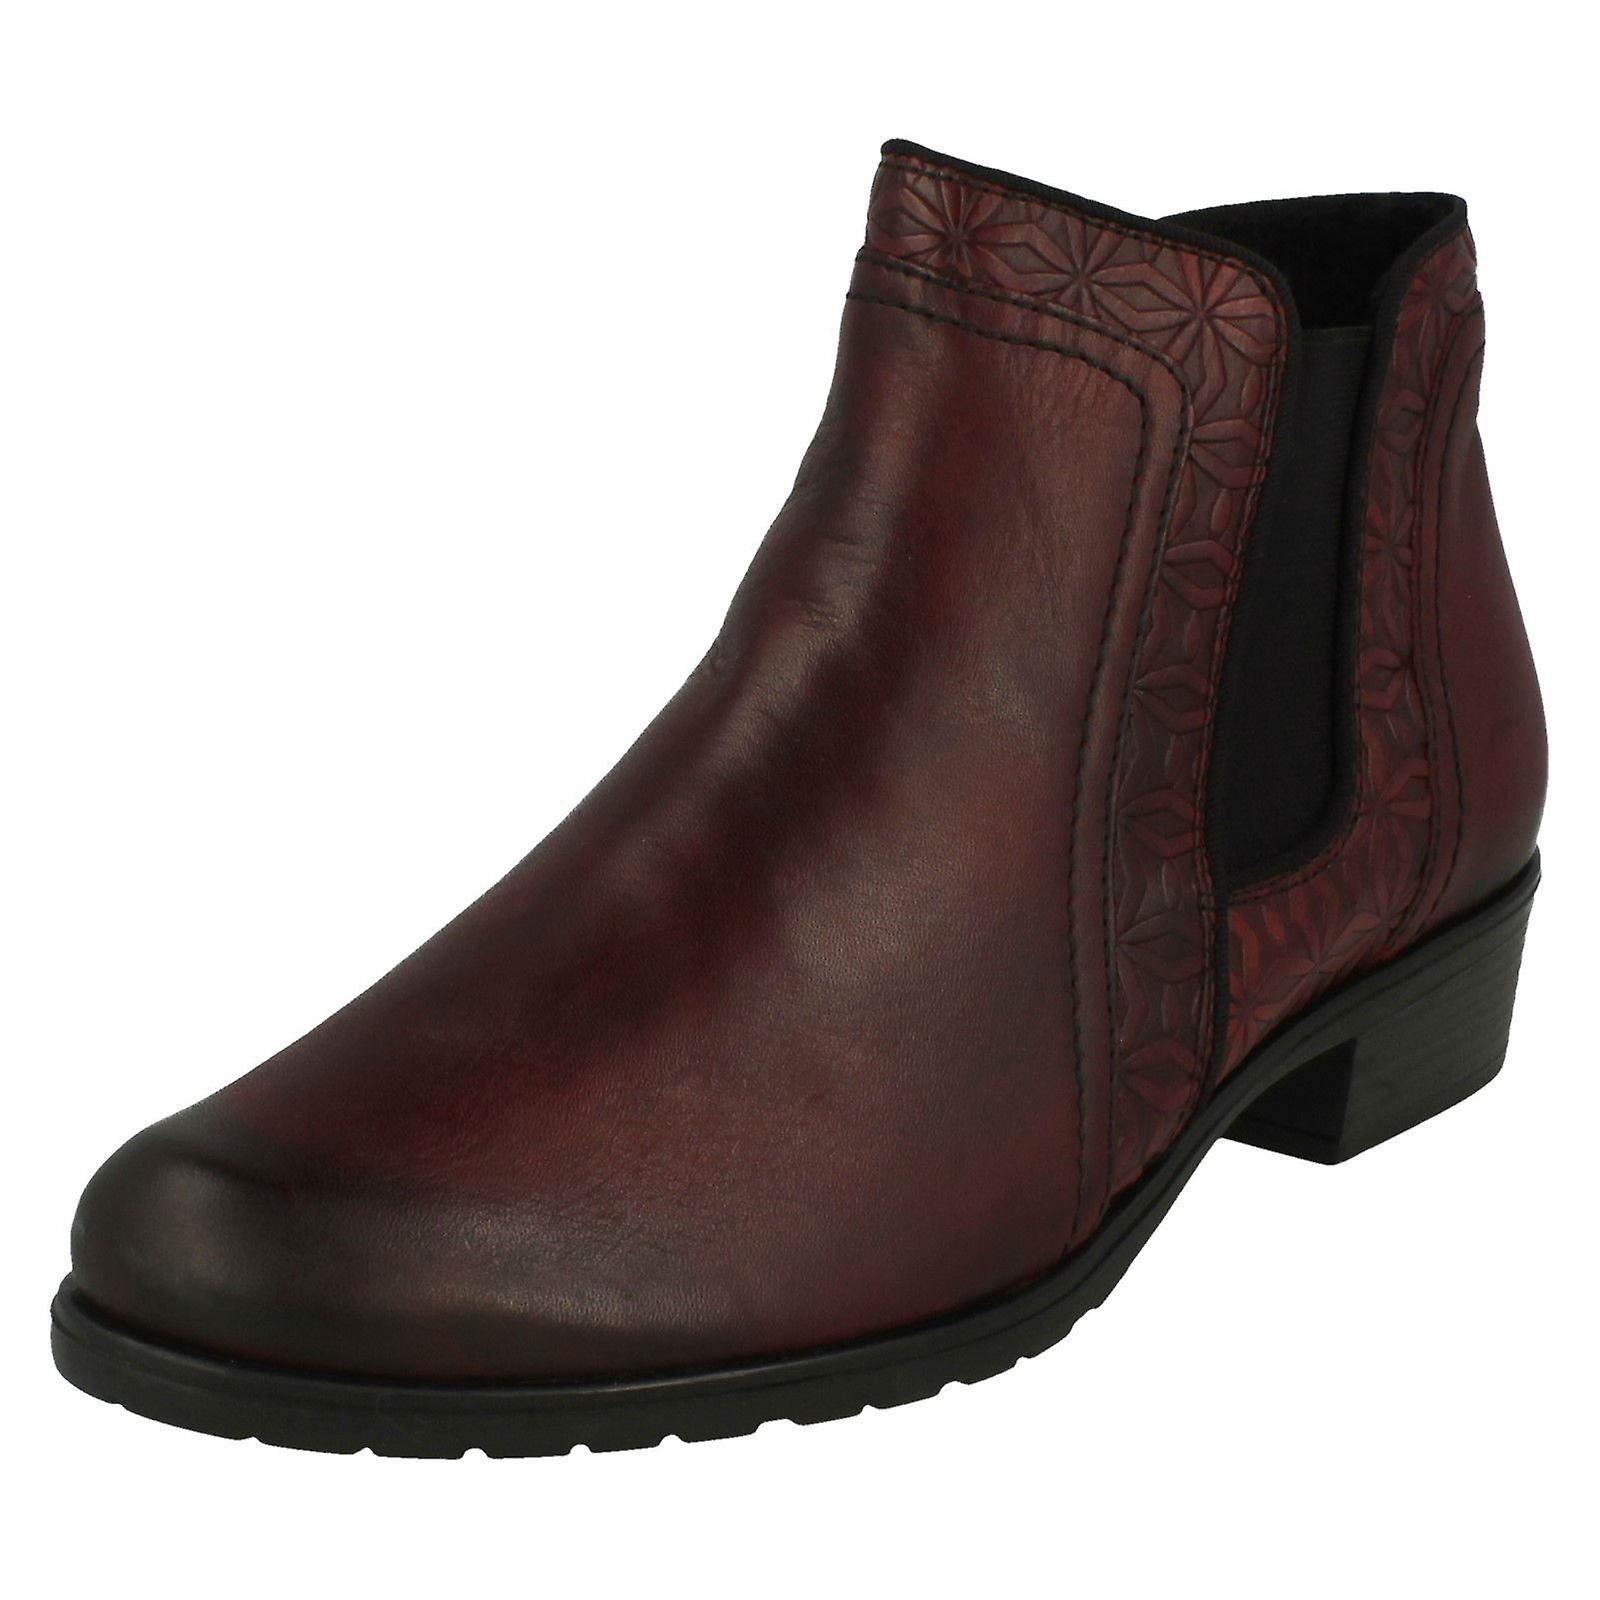 Ladies Remonte Smart Ankle Boots D6873 b9xtf